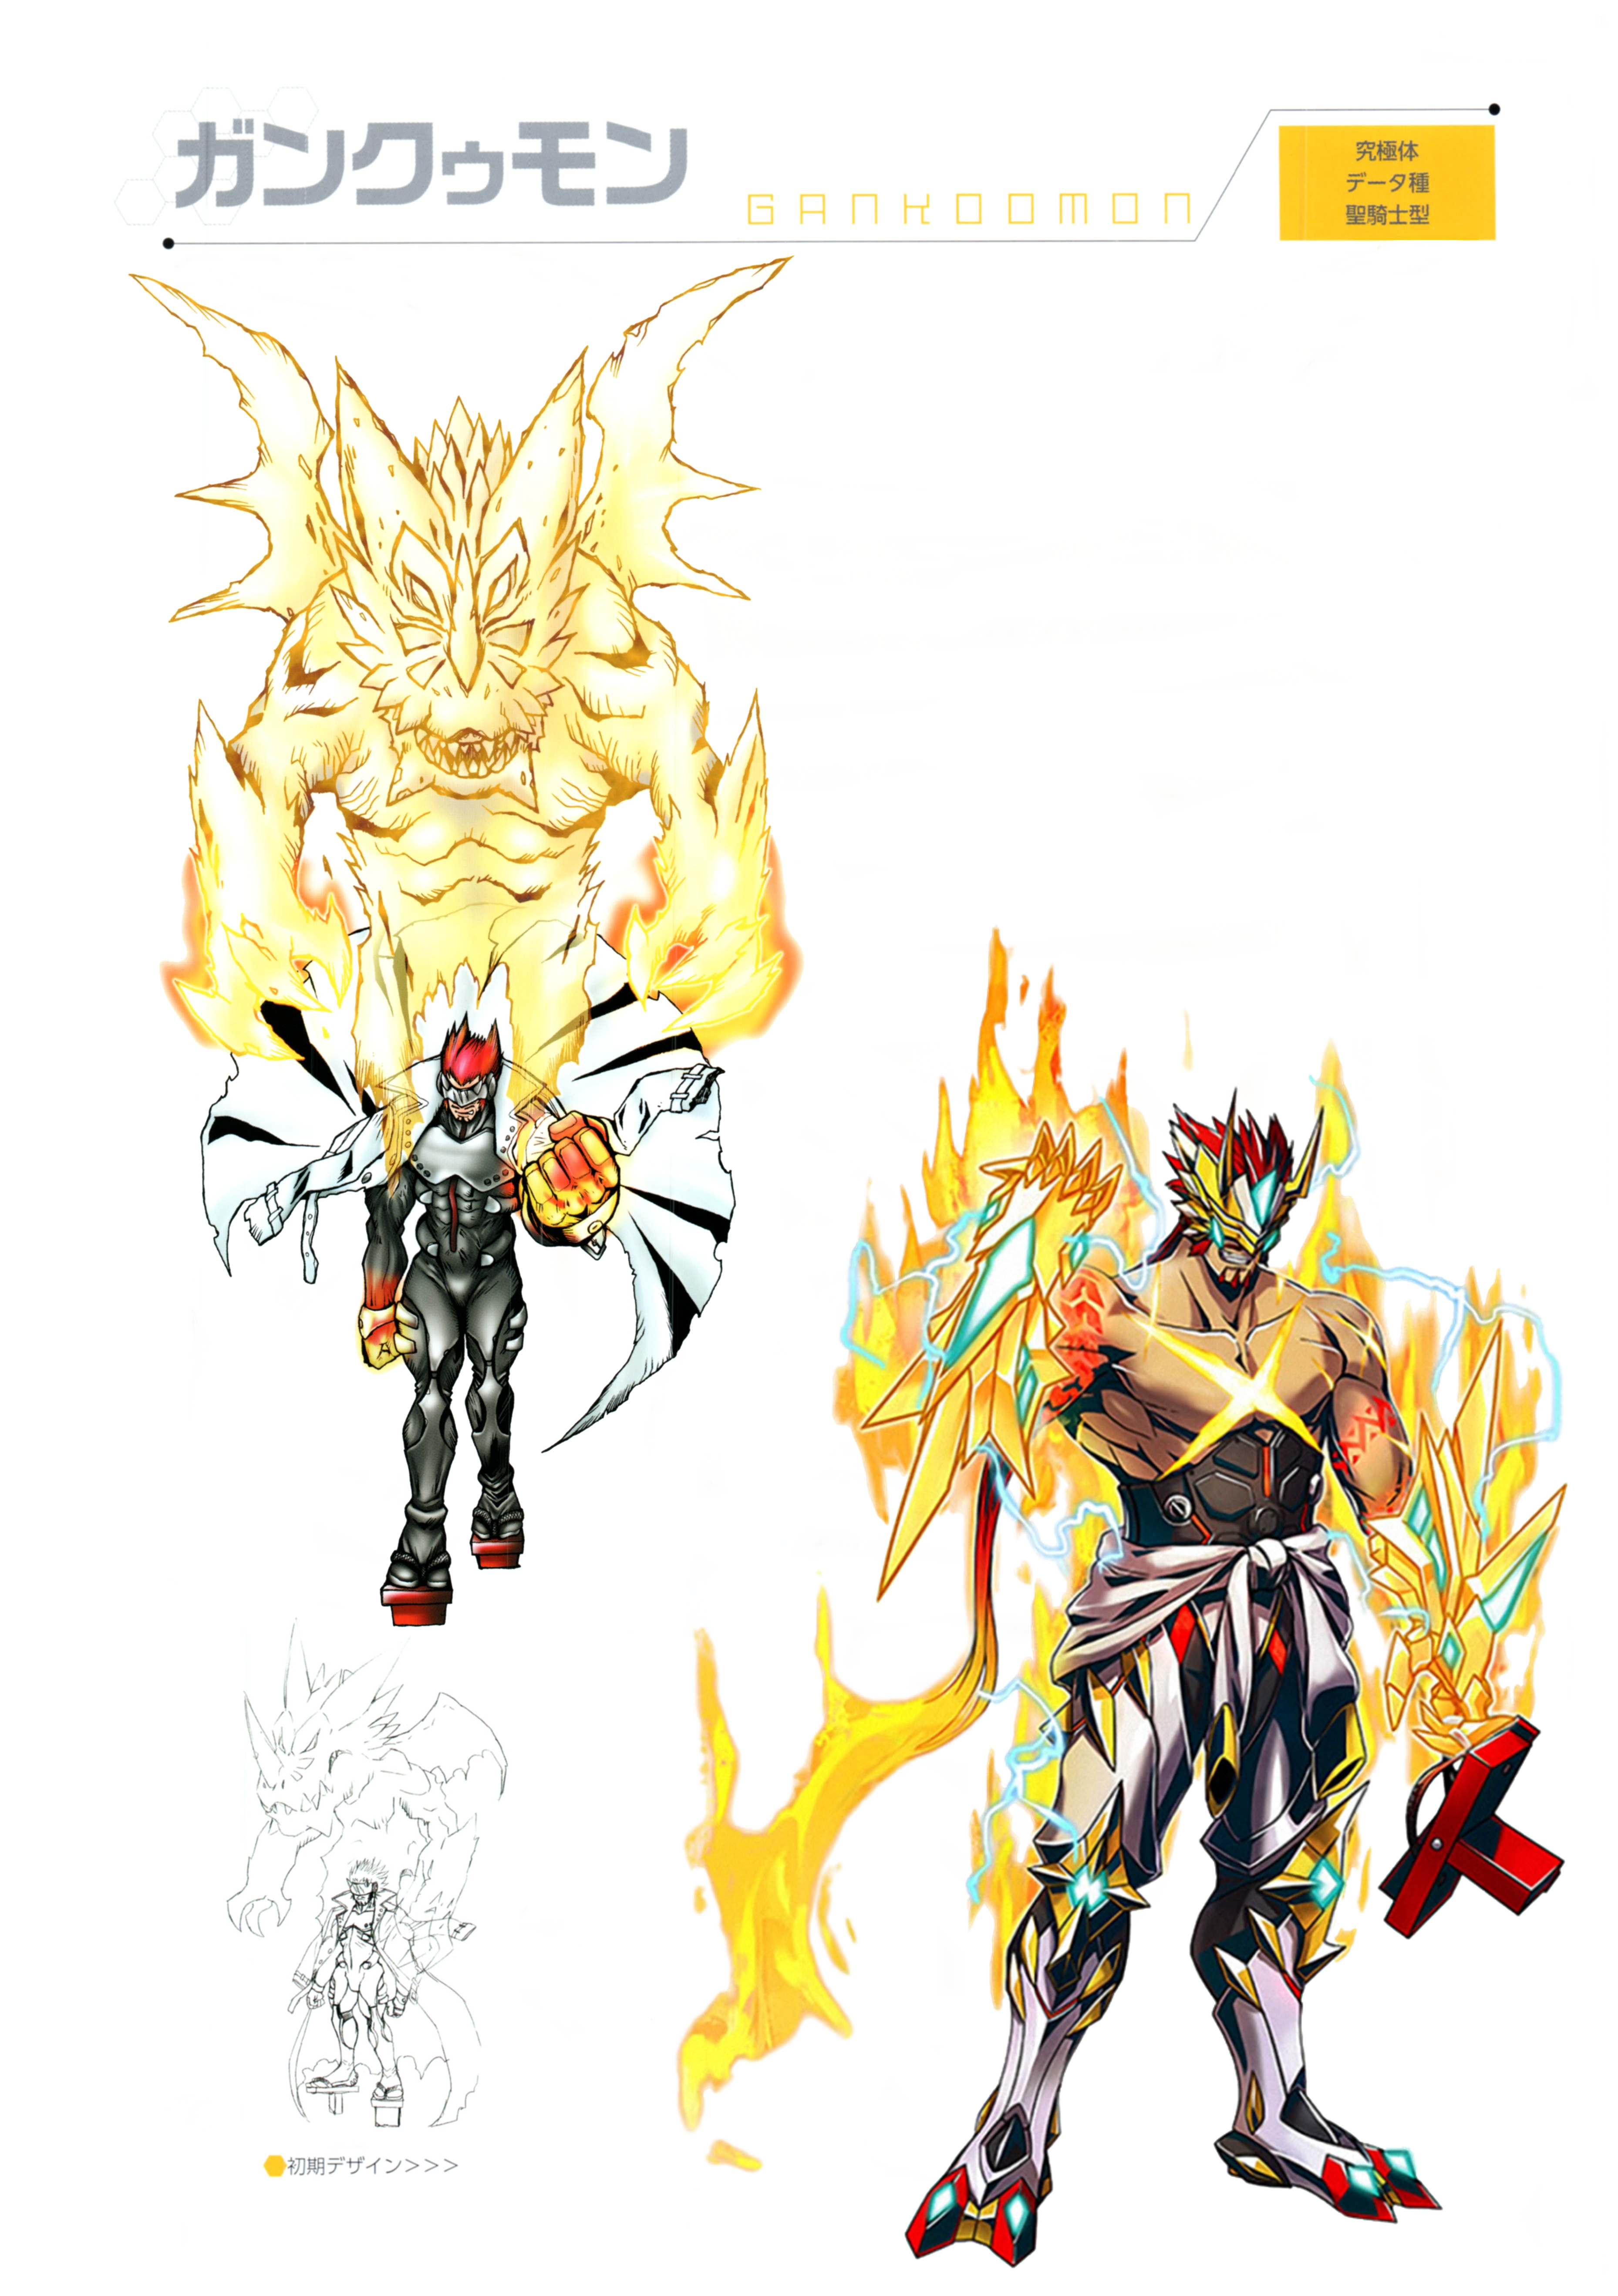 Gankoomon Digimon Digimon Adventure Anime Download free images in high quality directly from the site. pinterest